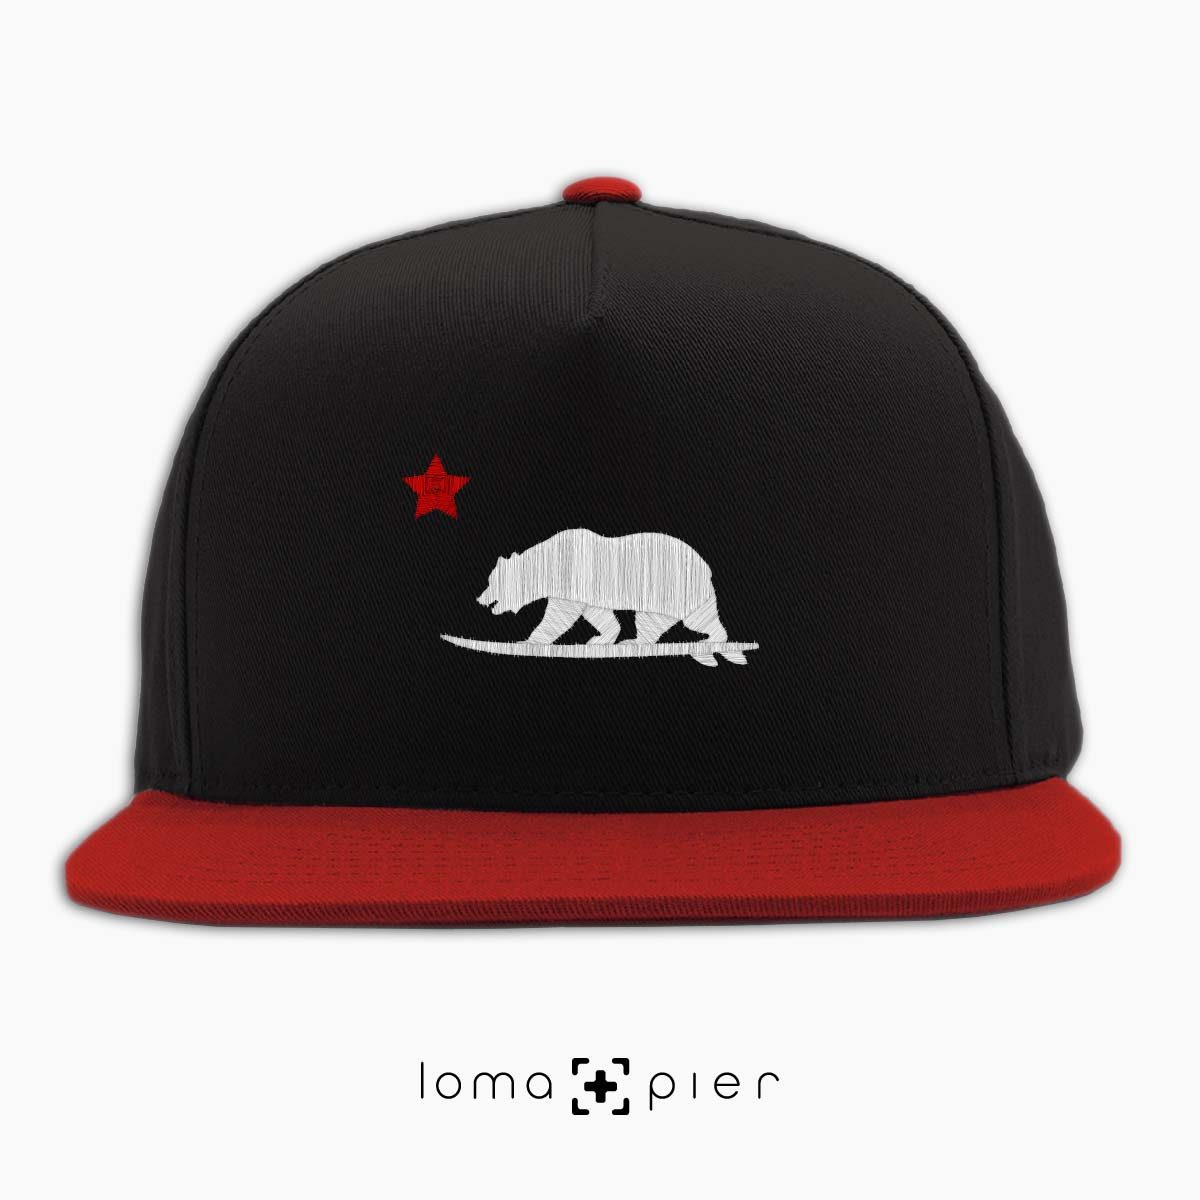 CALI SURFER icon embroidered on a black and red classic snapback hat with white and red thread by loma+pier hat store